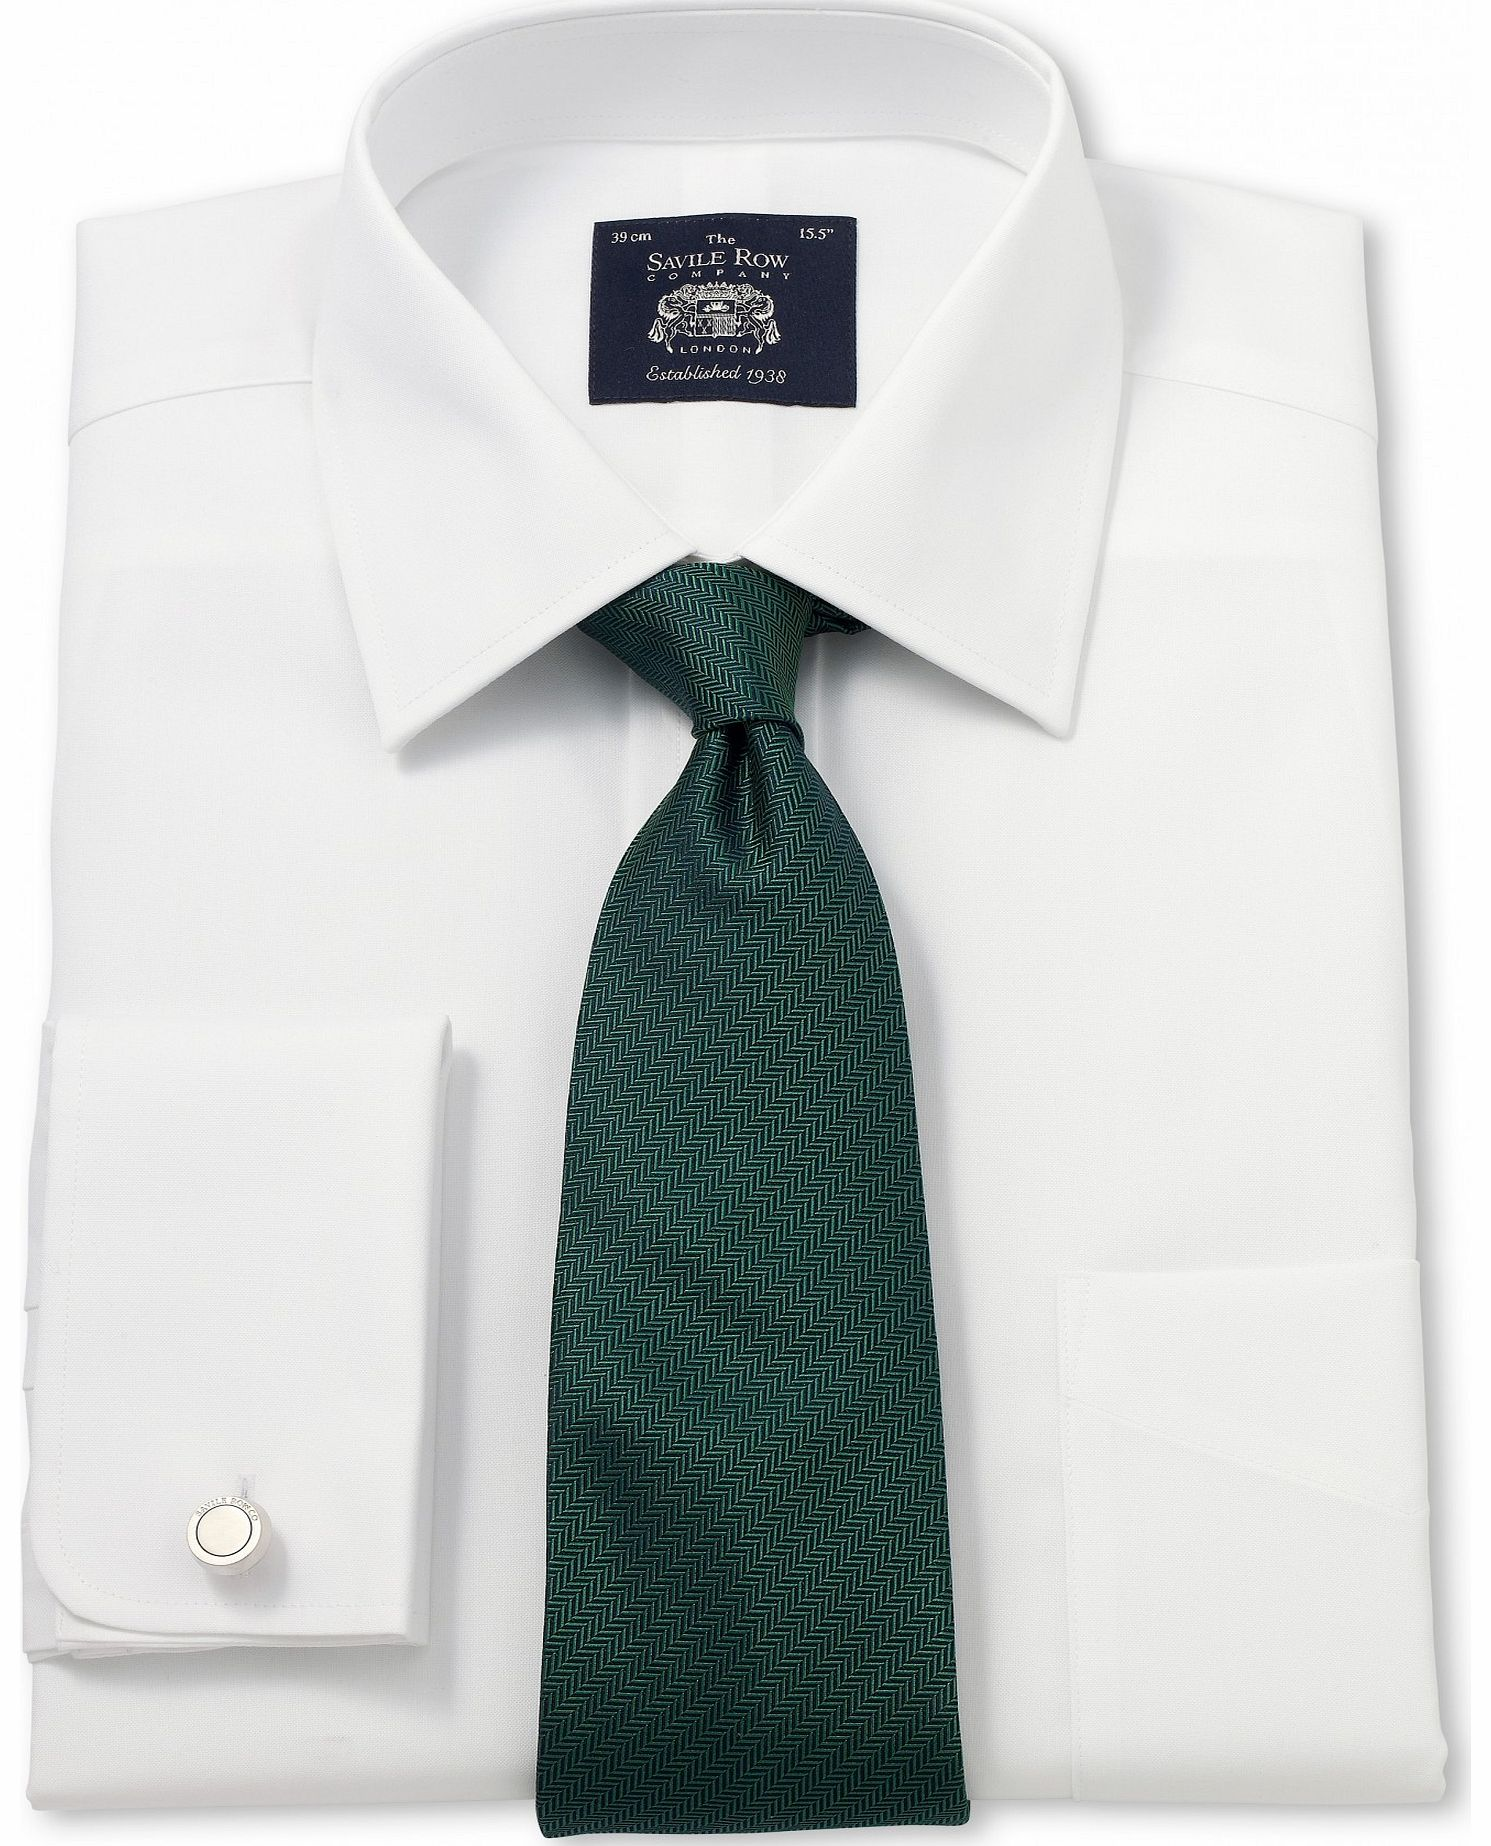 Savile Row Company White Non-Iron Classic Fit Shirt 15`` Standard & product image